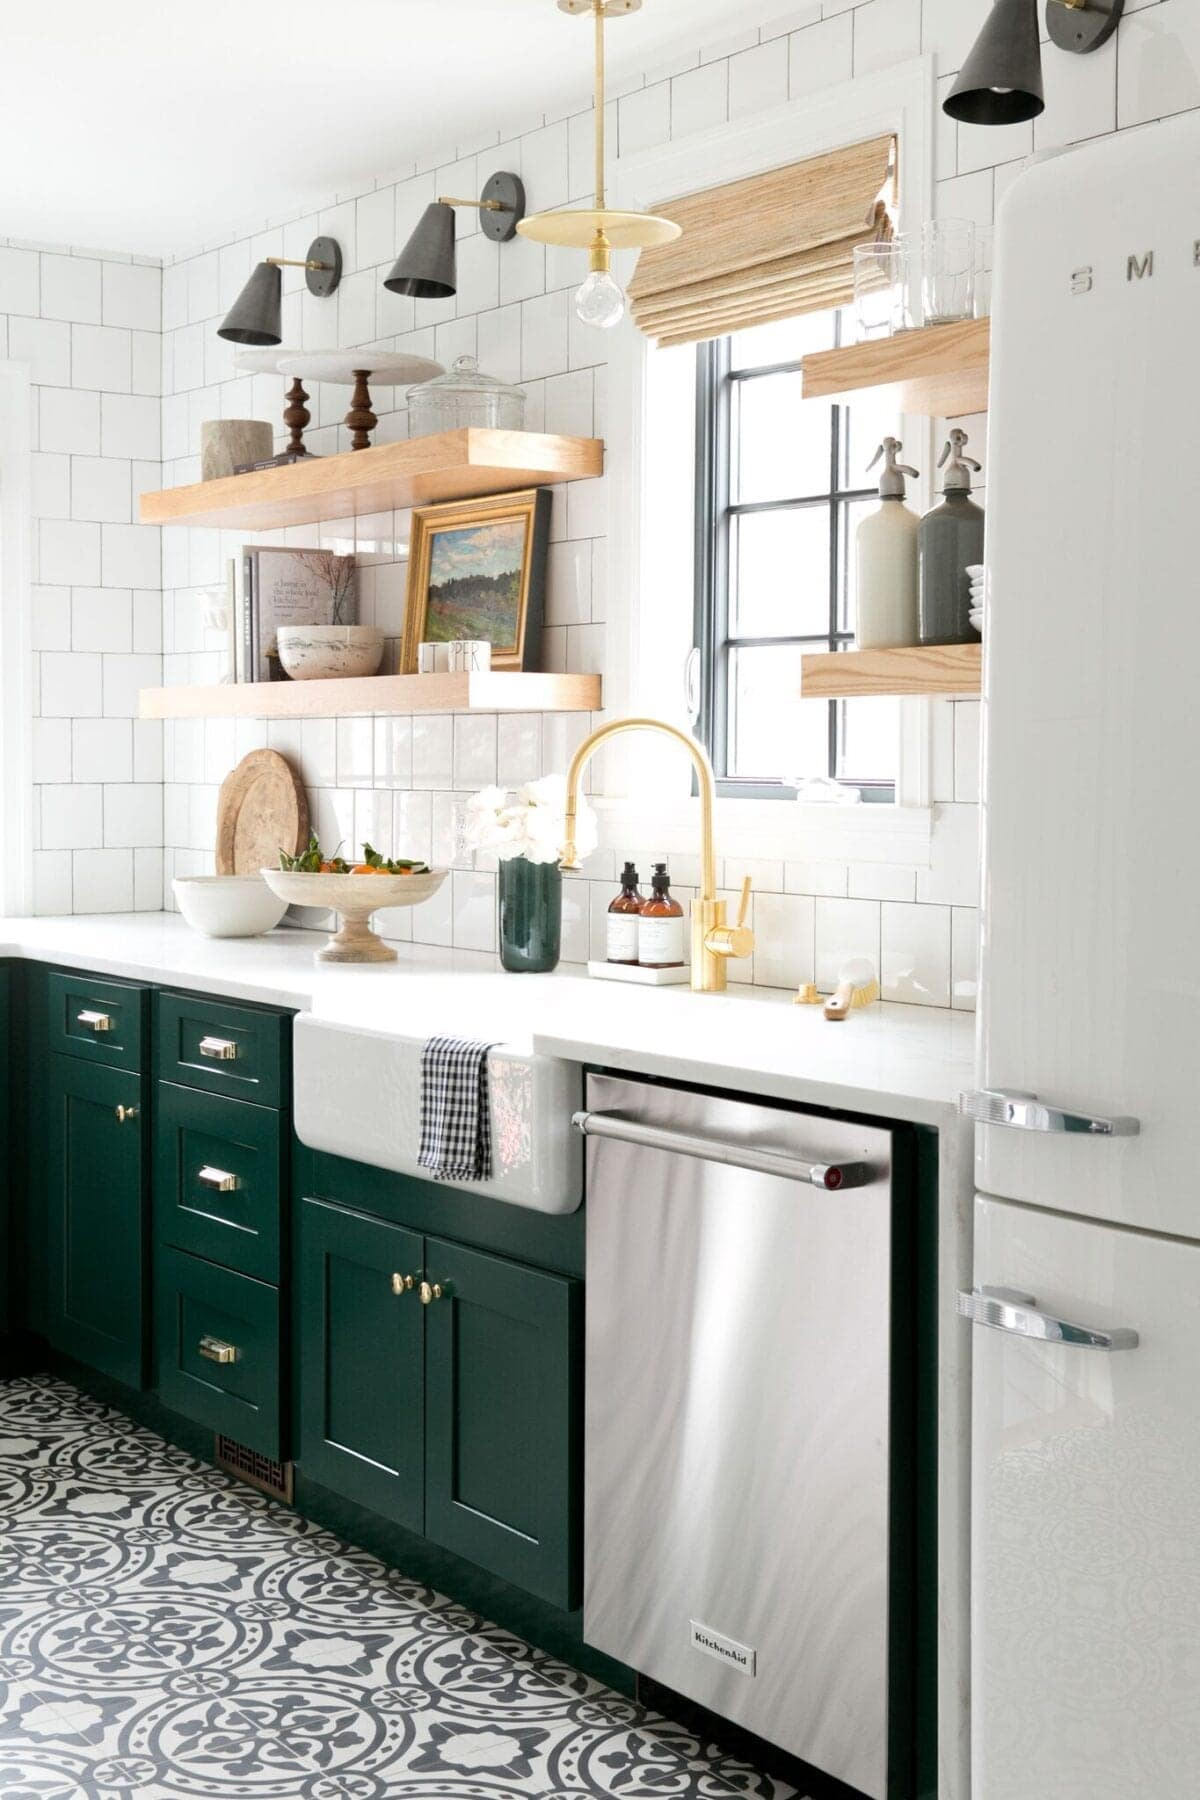 Mixing Kitchen Cabinet Colors Green Kitchen Cabinet Inspiration Bless 39er House